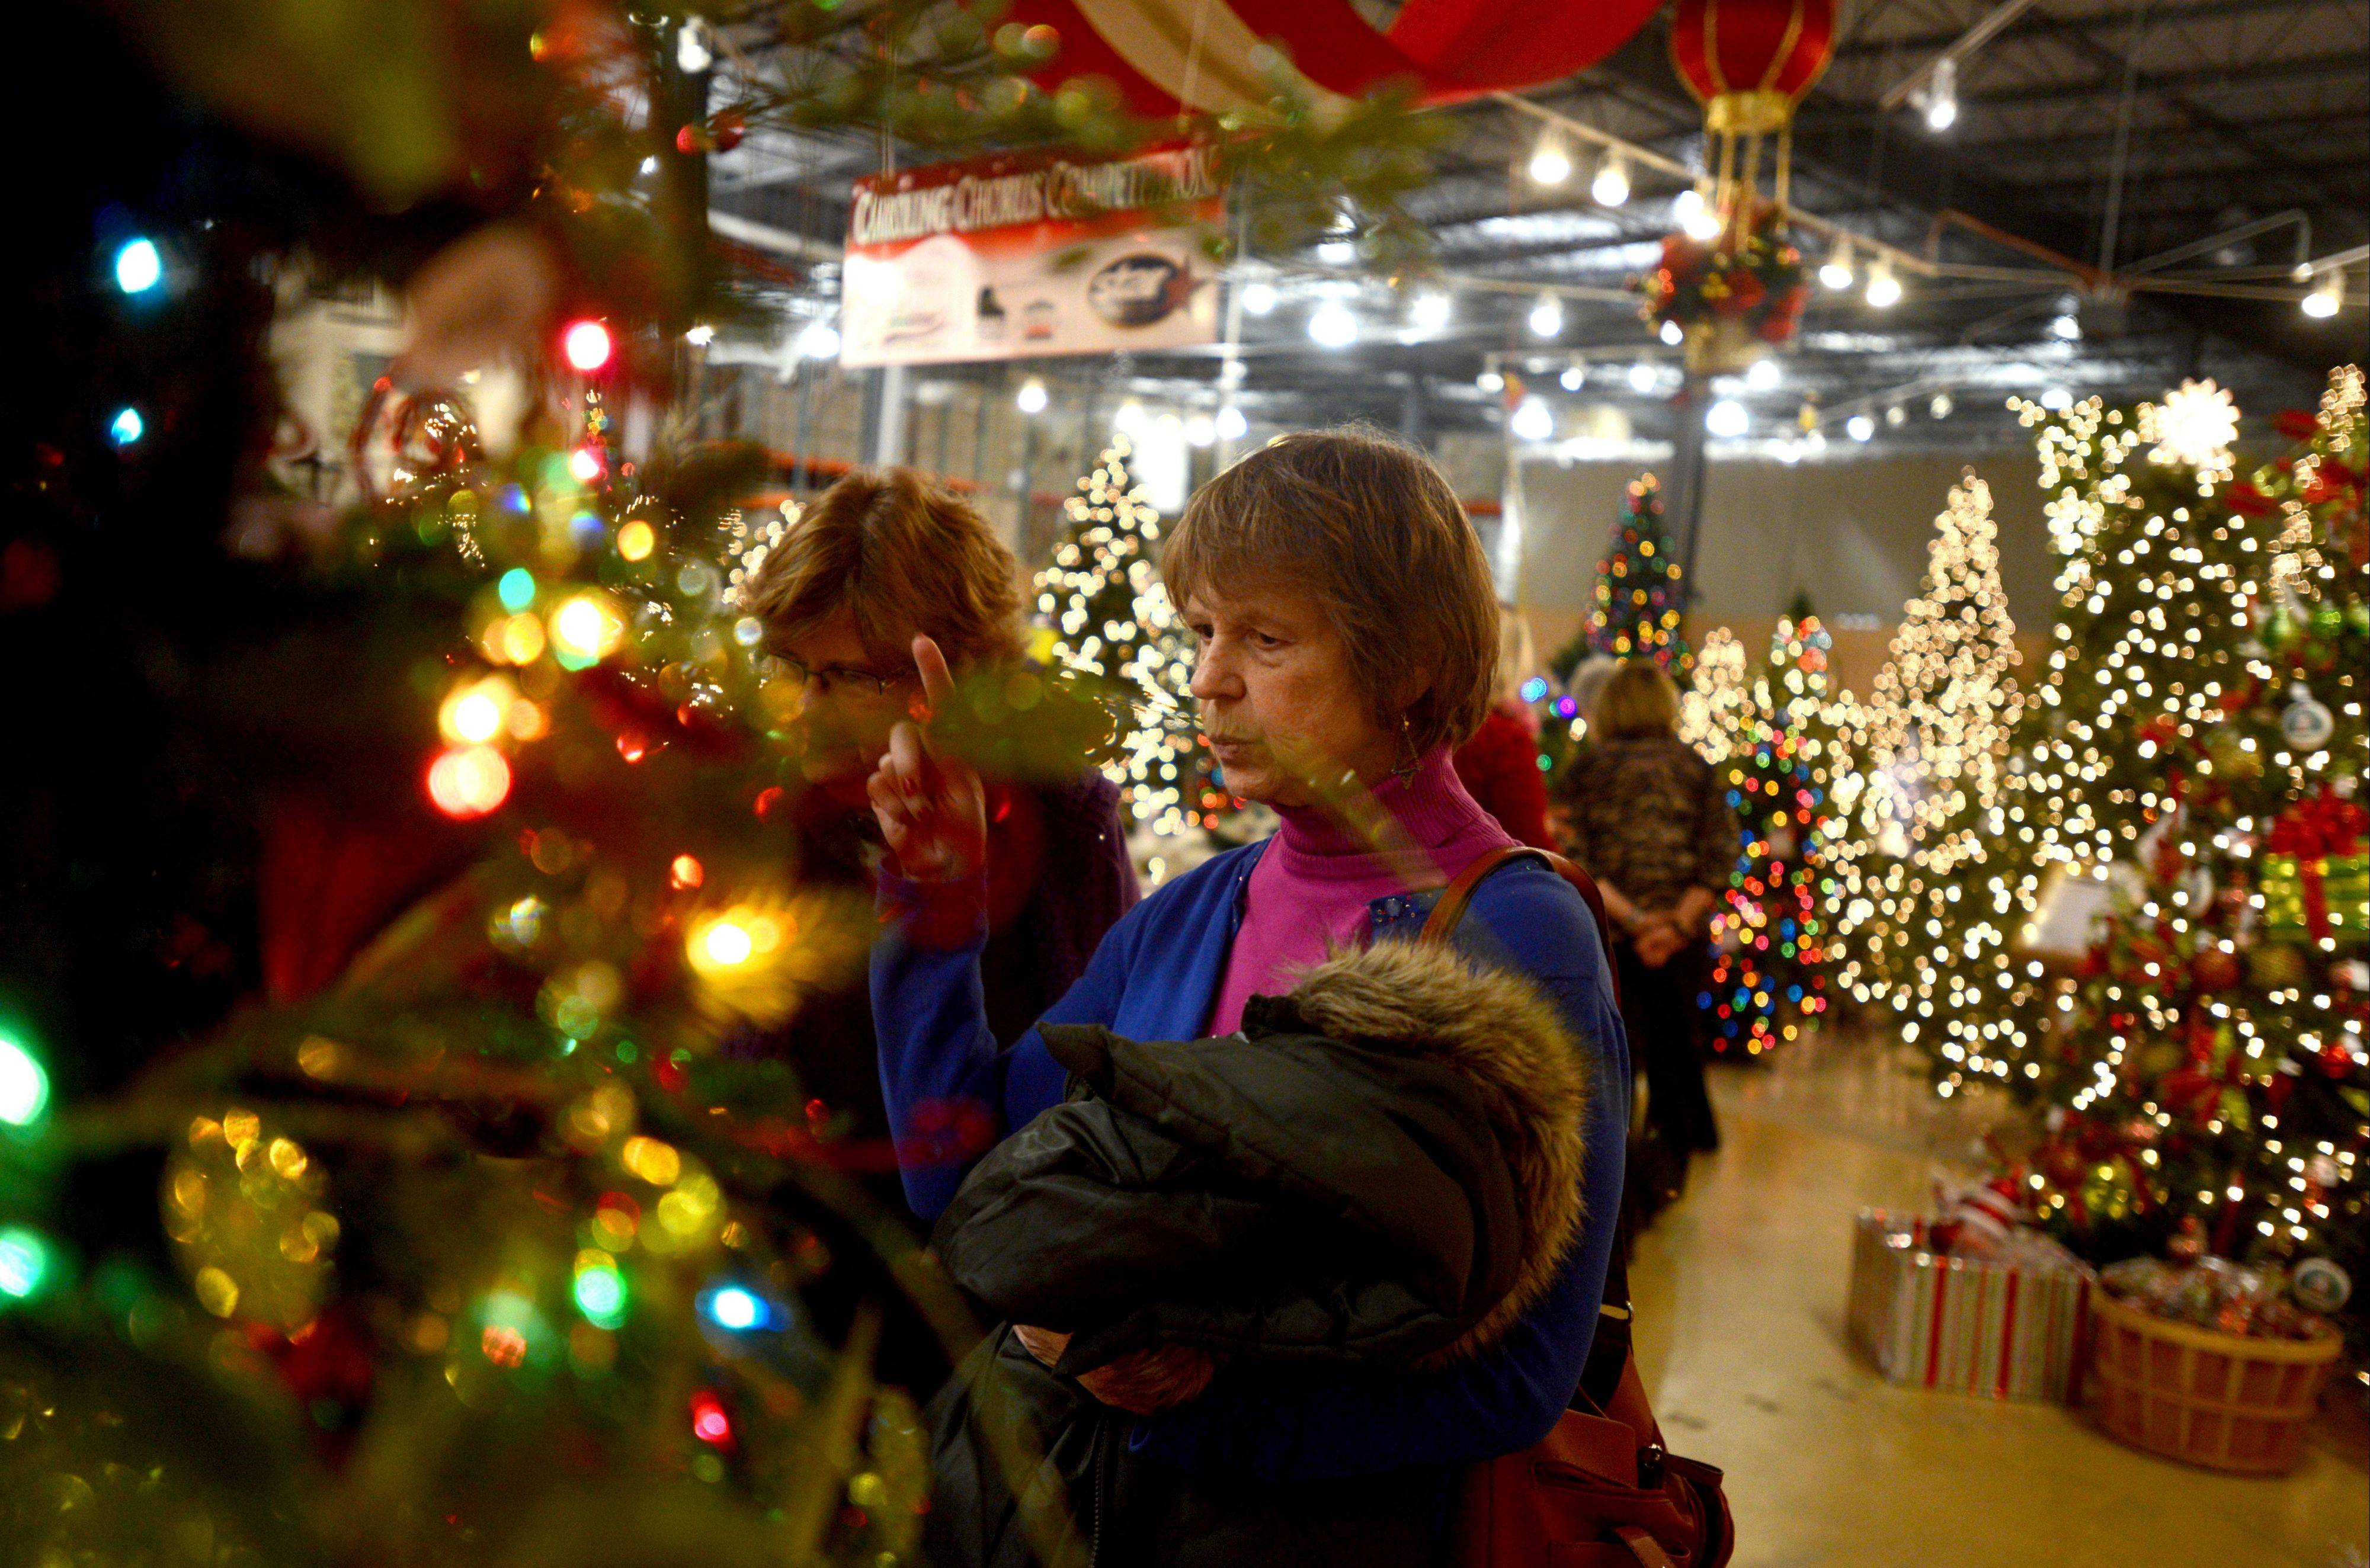 Carol Zavatsky of Arlington Heights looks at decorated trees and ornaments Wednesday during an event Wednesday at TreeTime in Lake Barrington. The event, sponsored by the Daily Herald for subscribers, also kicked off an annual holiday lights contest, with prizes for the best home holiday lights displays in the suburbs.